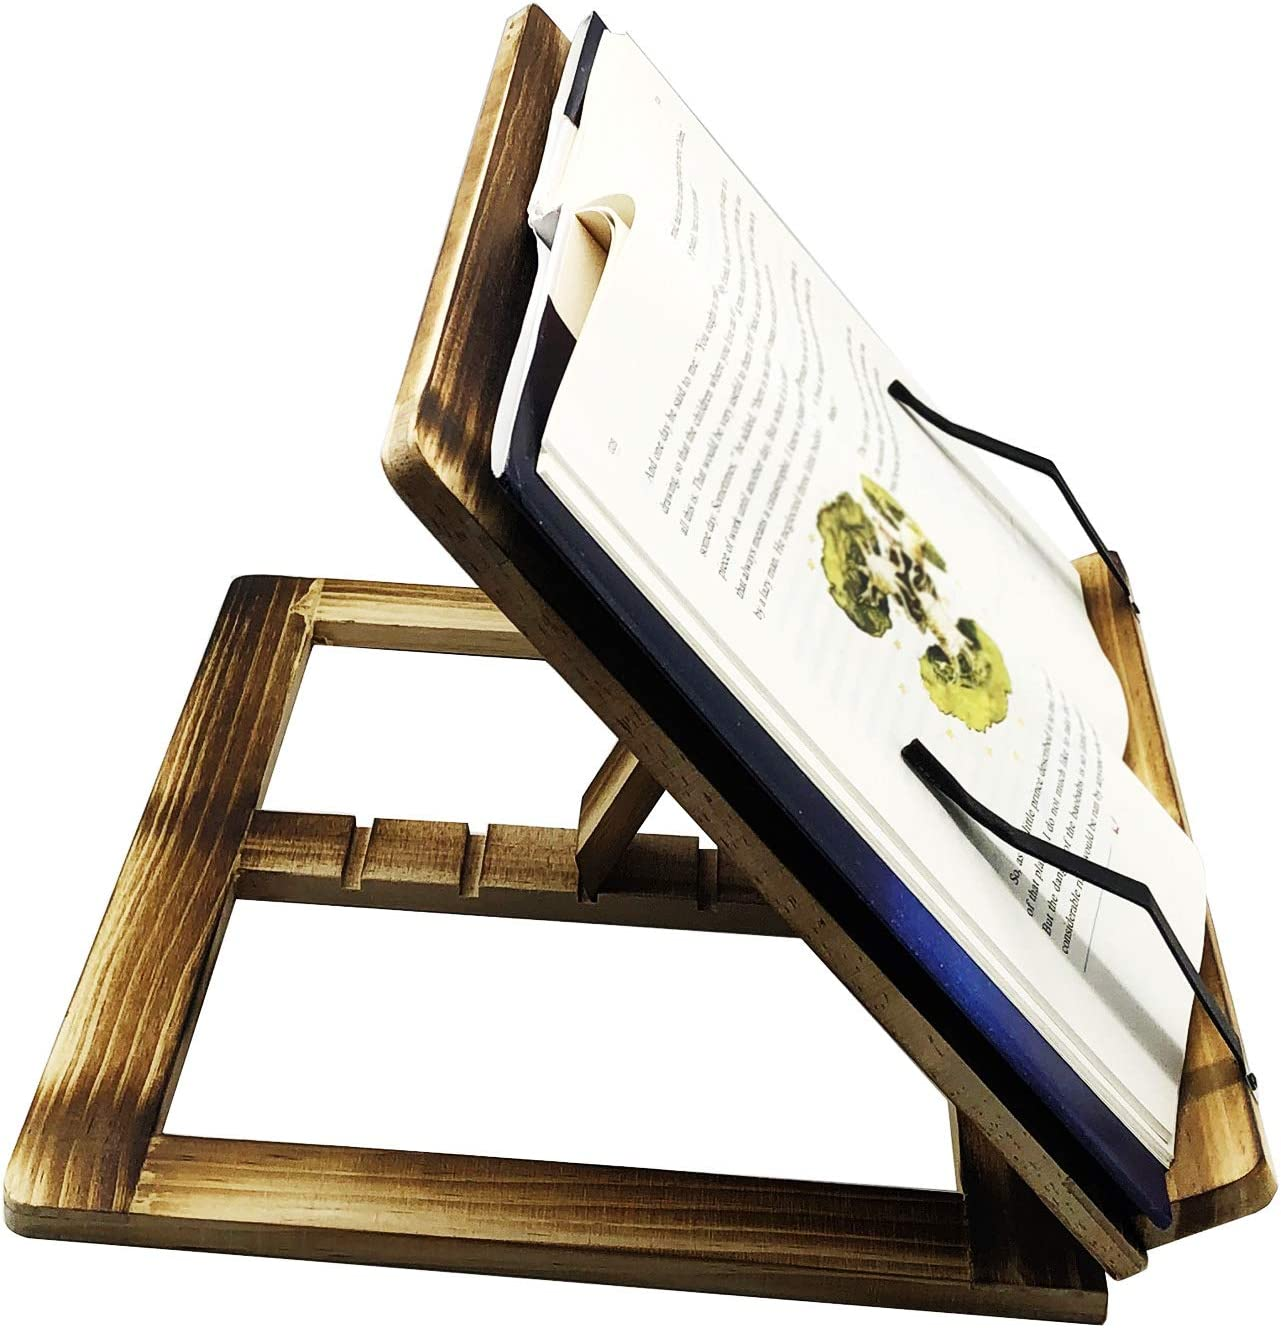 PrettyWit Wooden Book Stand Reading Rest Cook Book Document Stand Holder Bookrest - Carbonized Wood with Steel Tip